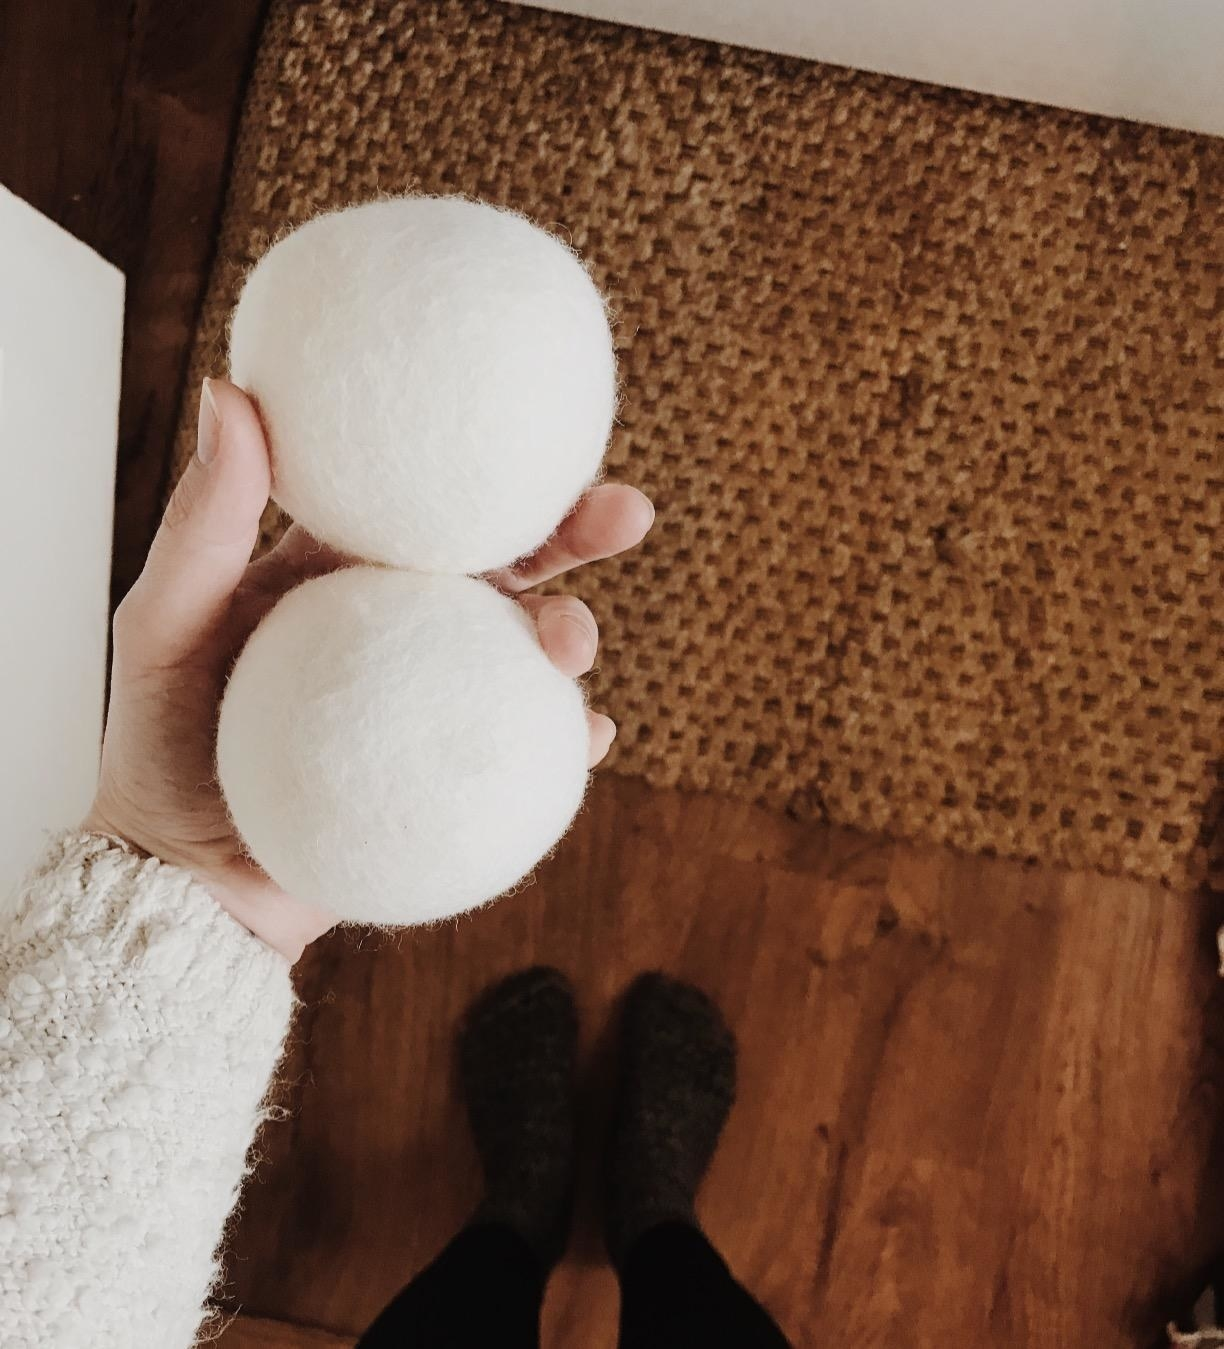 Reviewer holding two of the white balls in their hand